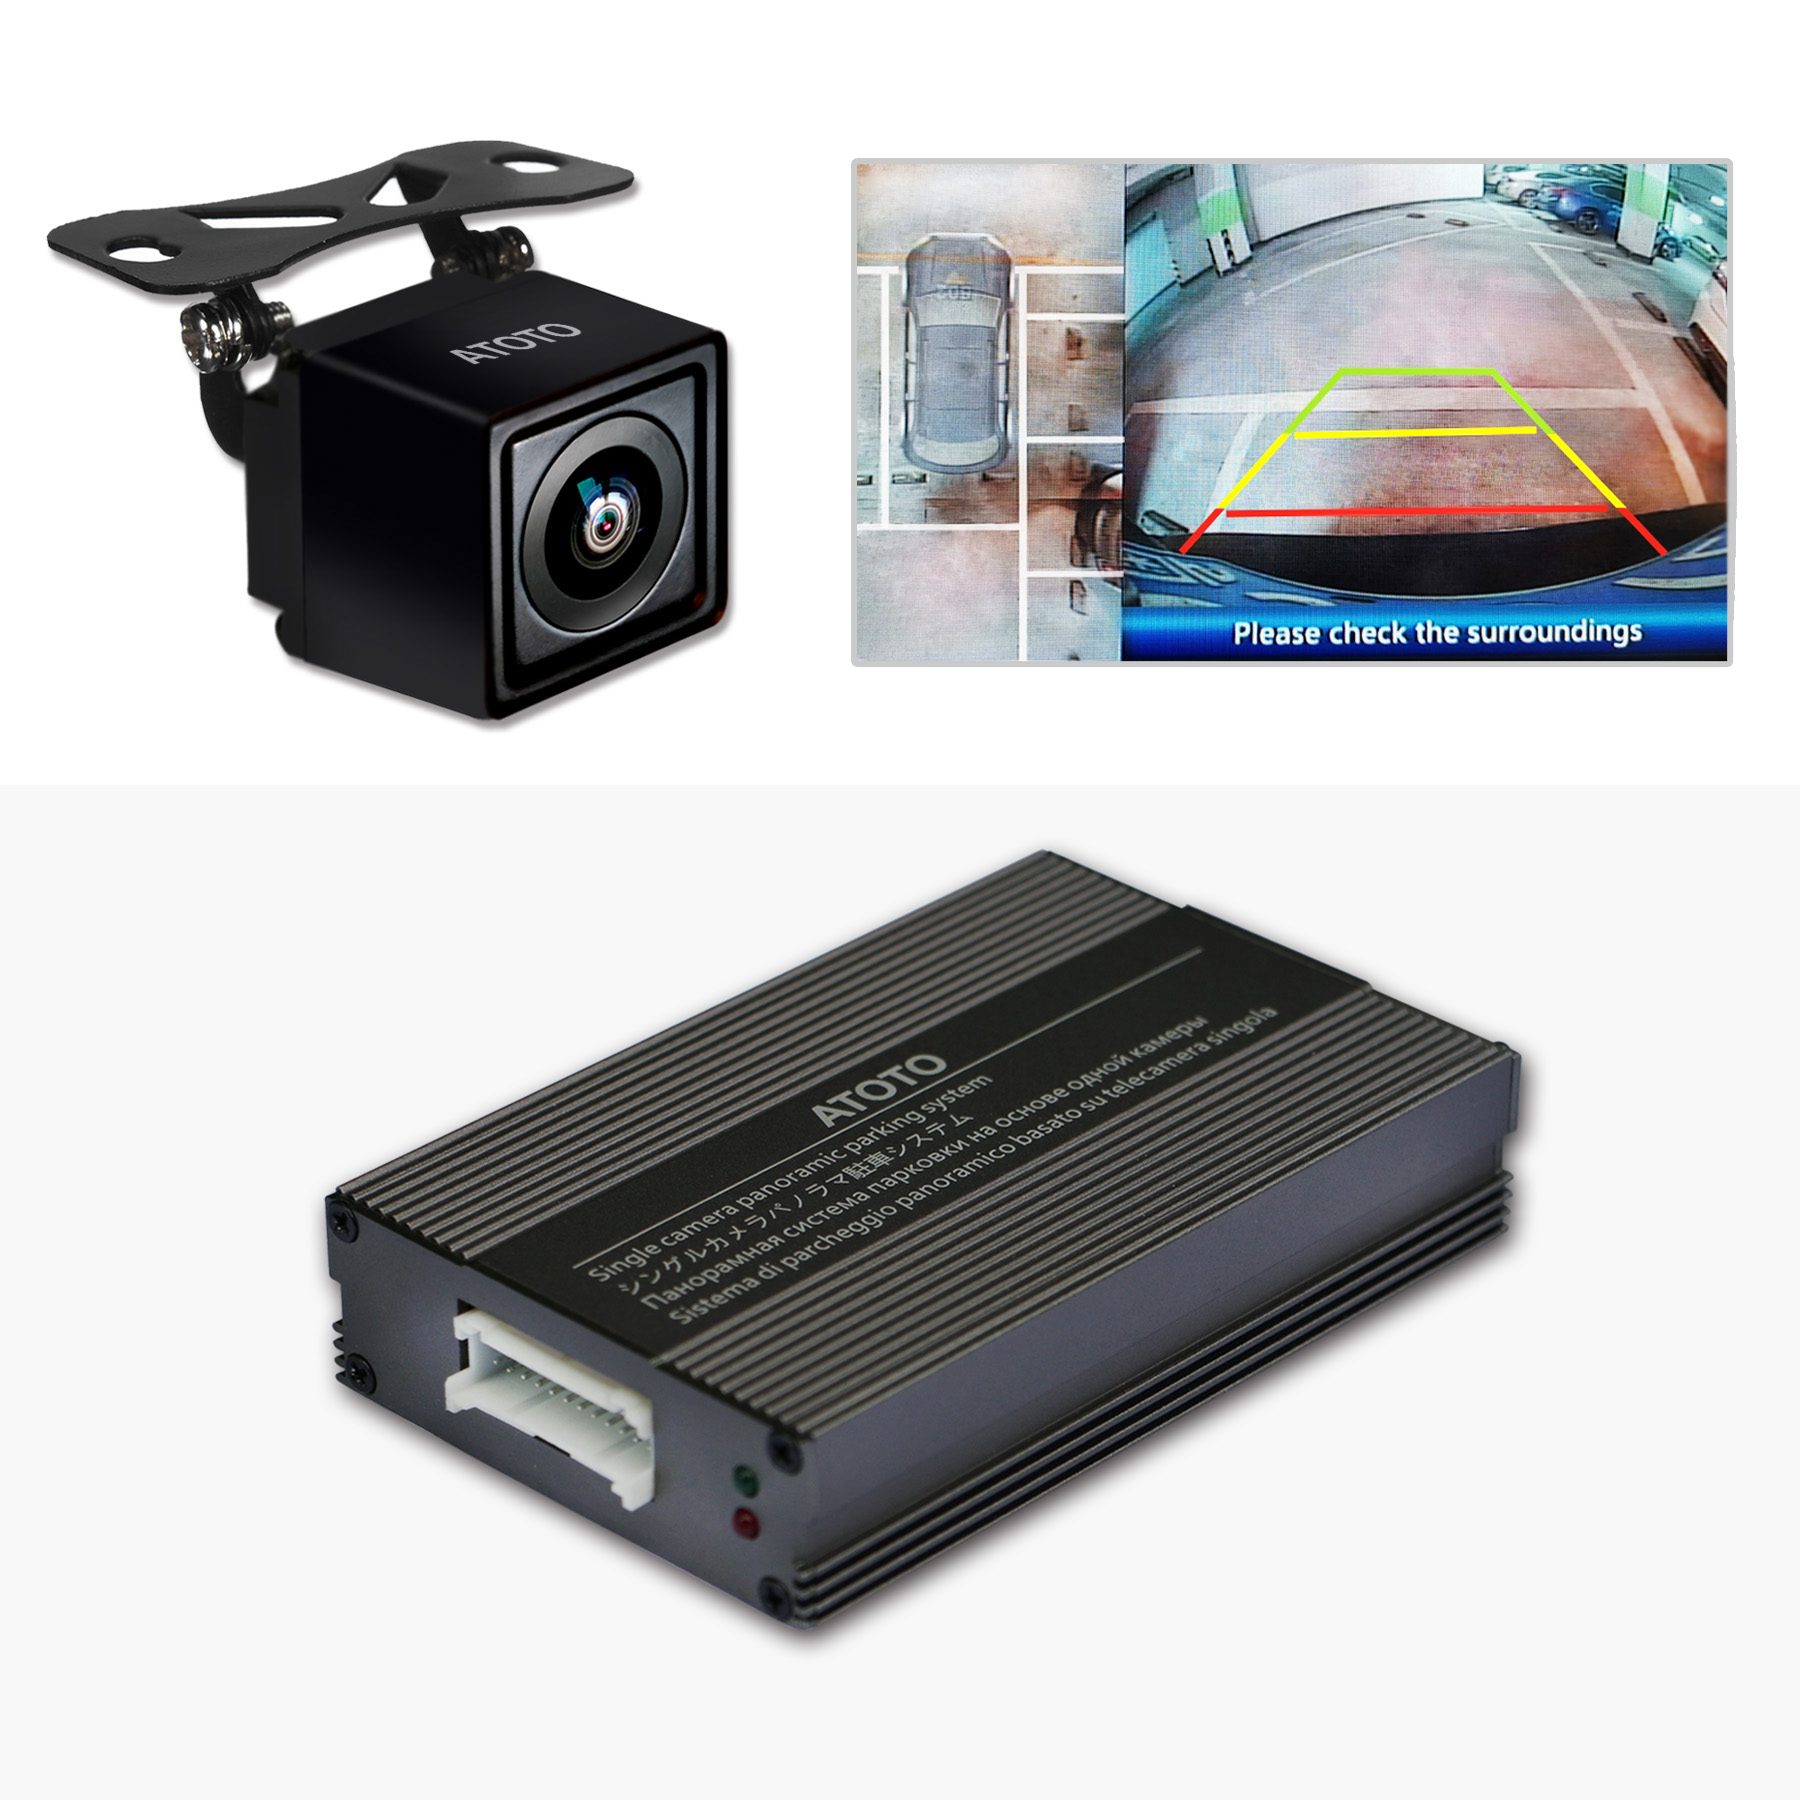 ATOTO AC-SC3601 Single Camera Surround View Rearview Parking System -Panoramic Image Stitching  -Bird's-Eye View Of Surroundings